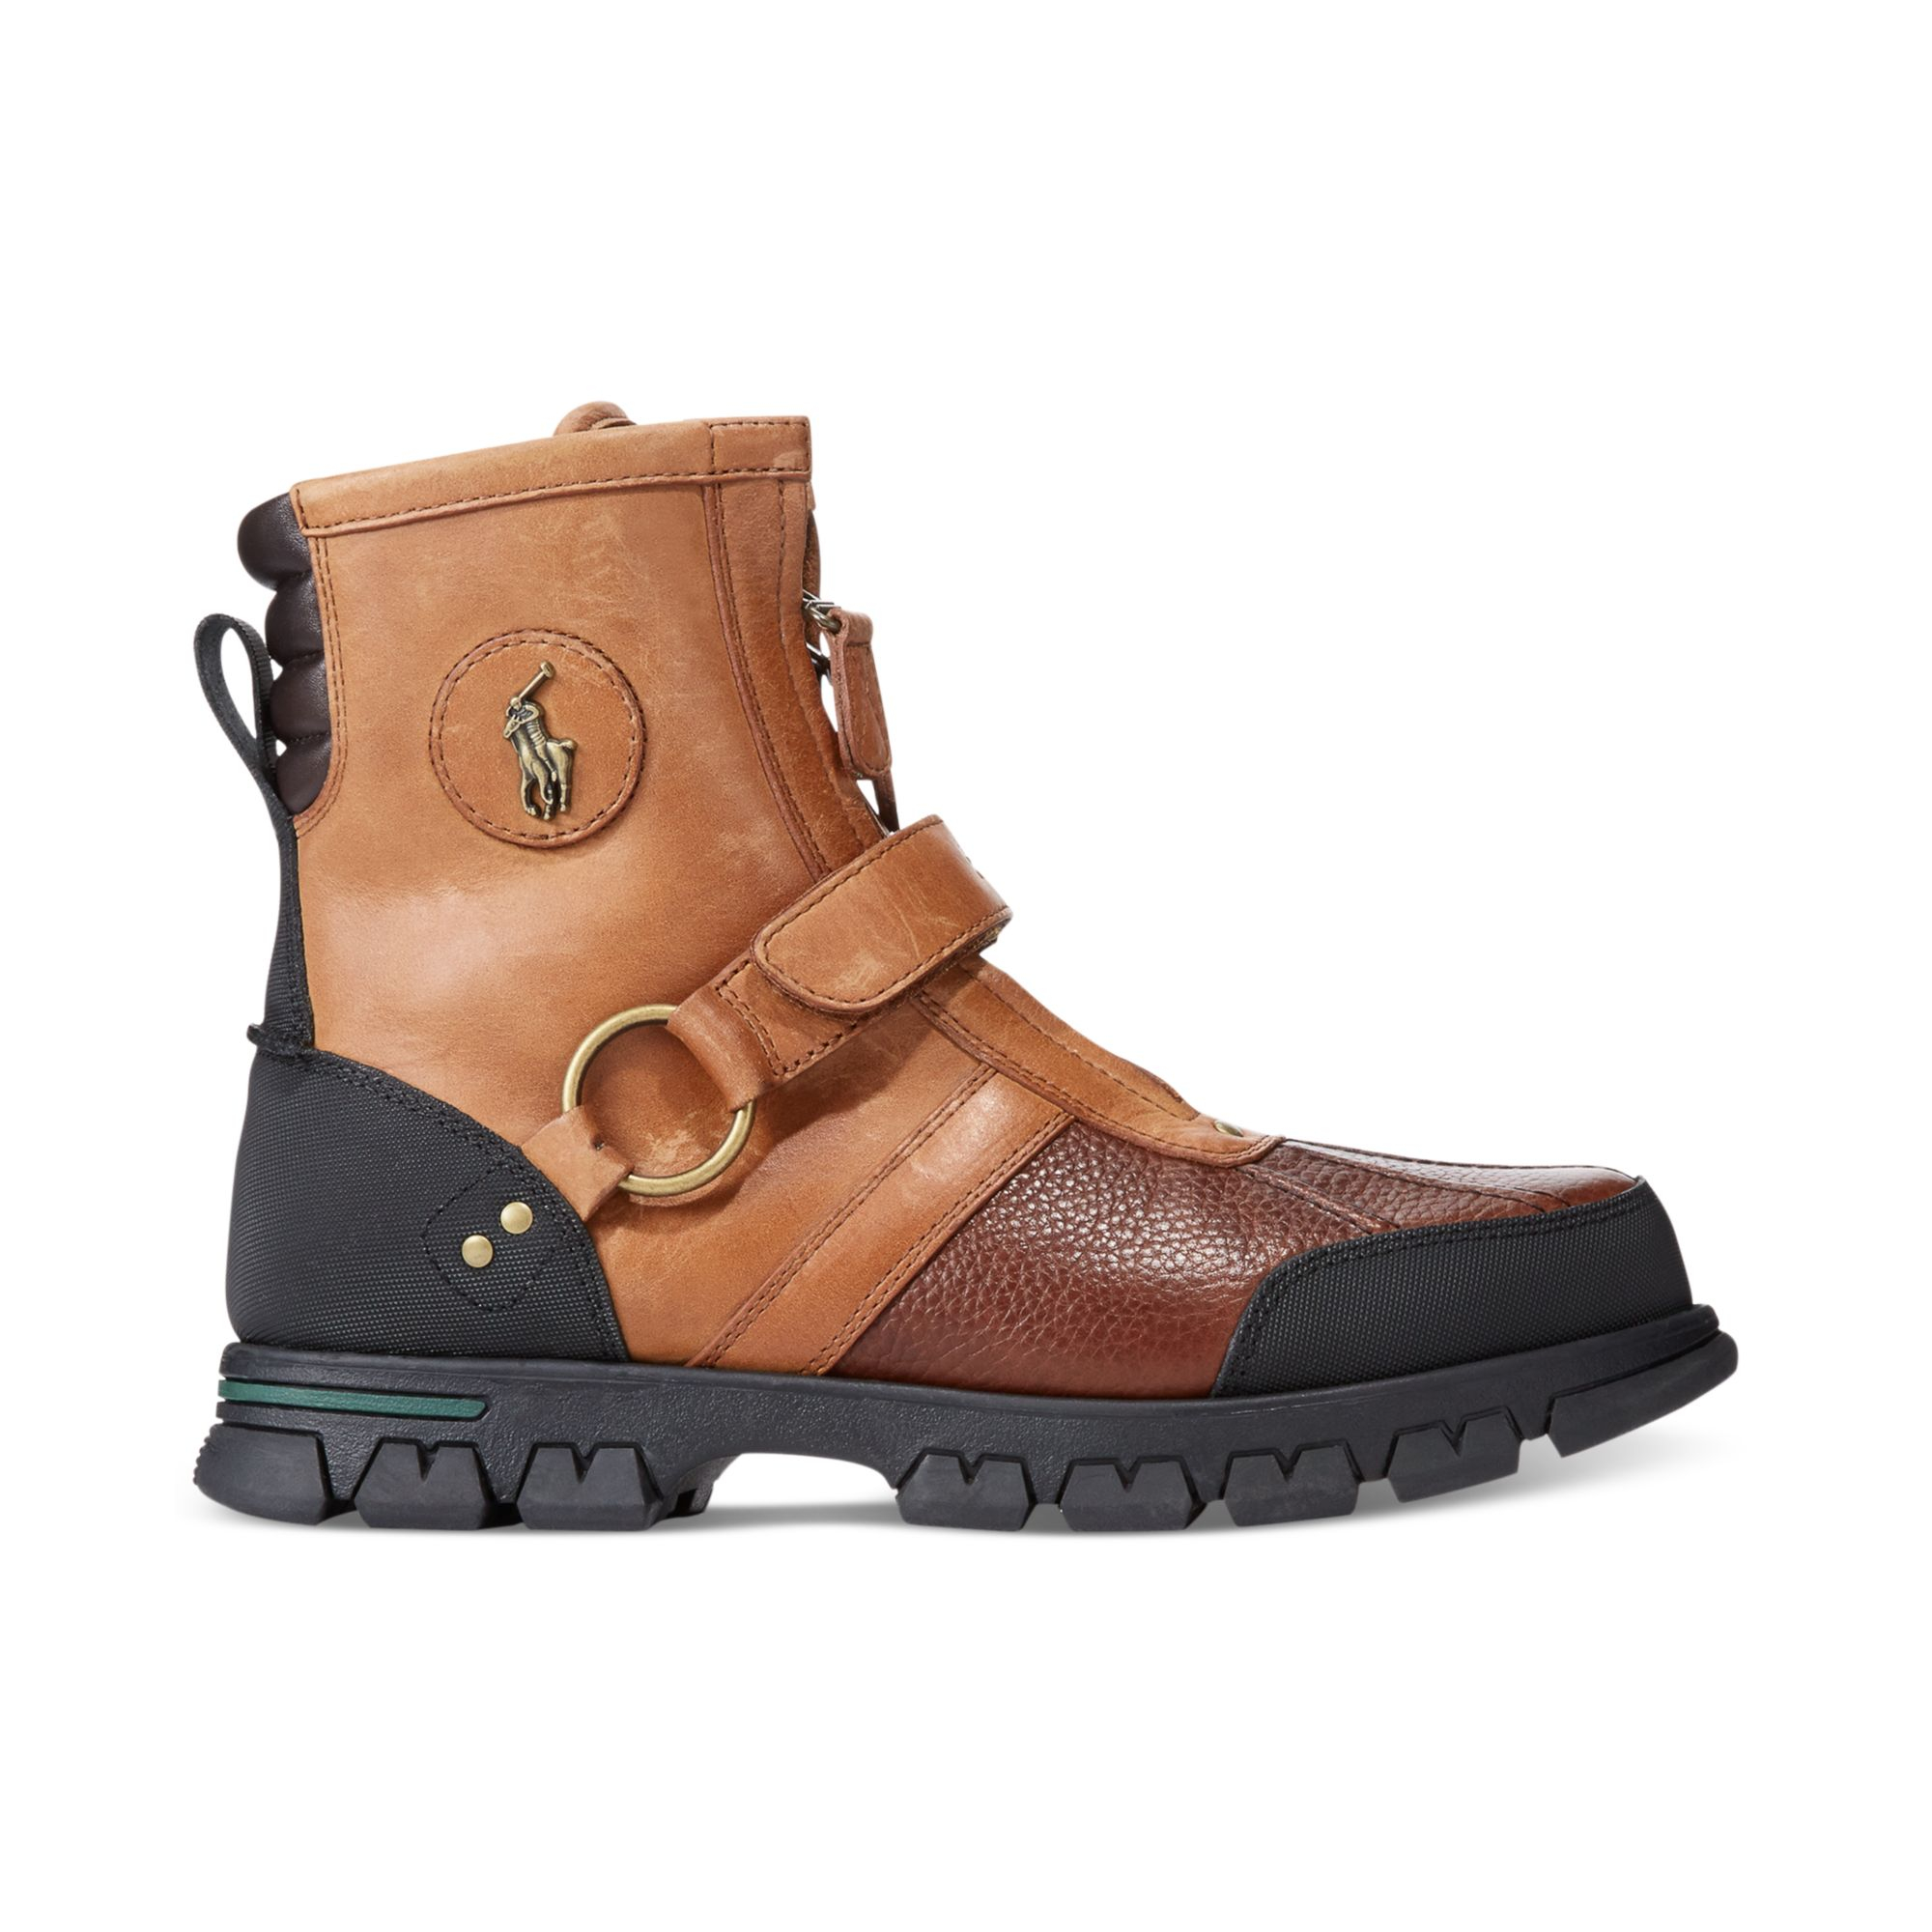 polo ralph lauren conquest iii high boots in brown for men briarwood brown lyst. Black Bedroom Furniture Sets. Home Design Ideas